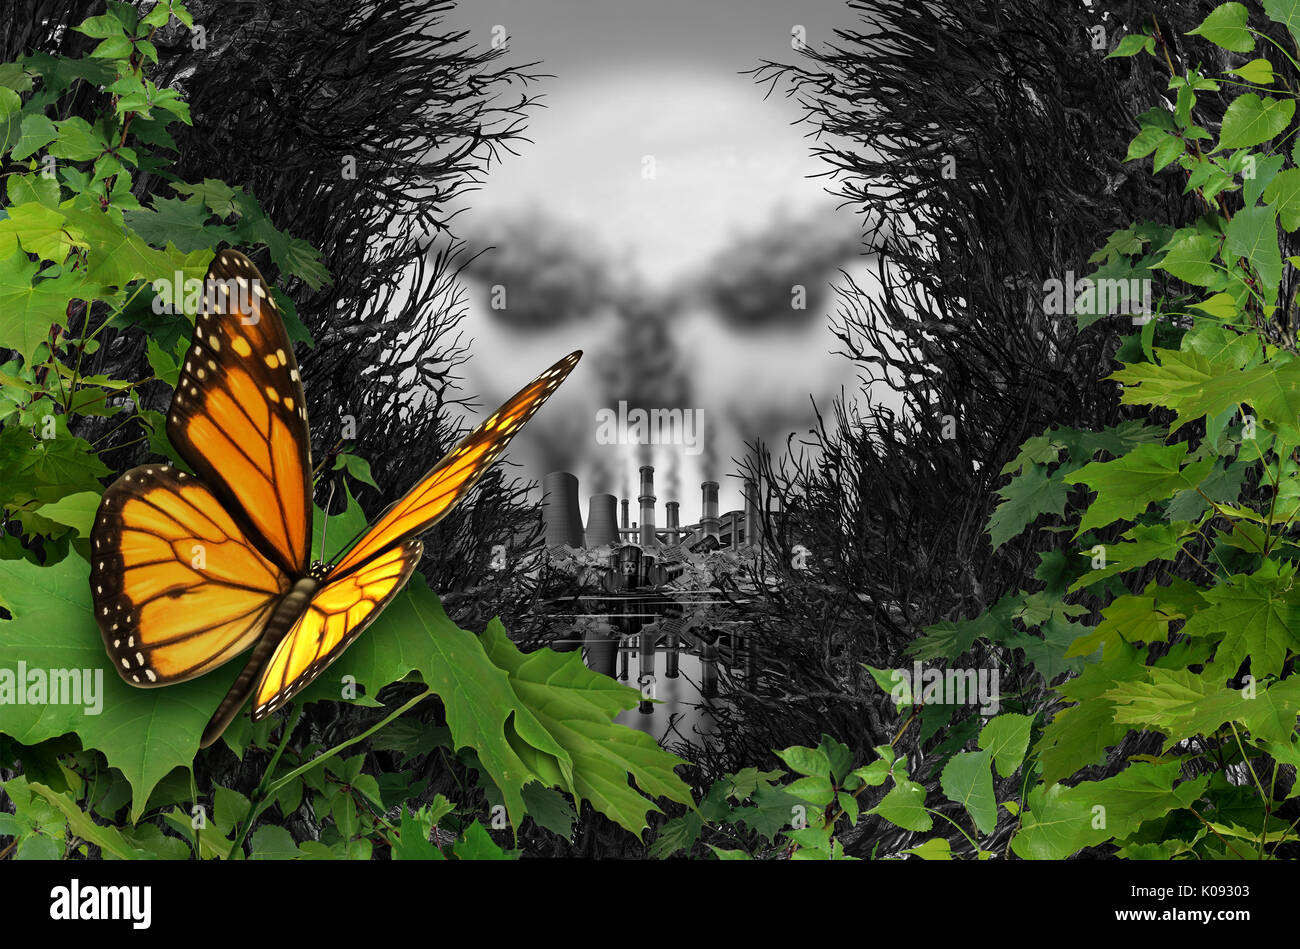 Environmental destruction and ecological natural habitat contamination as a butterfly looking at a polluted industrial area with coal chimneys. - Stock Image